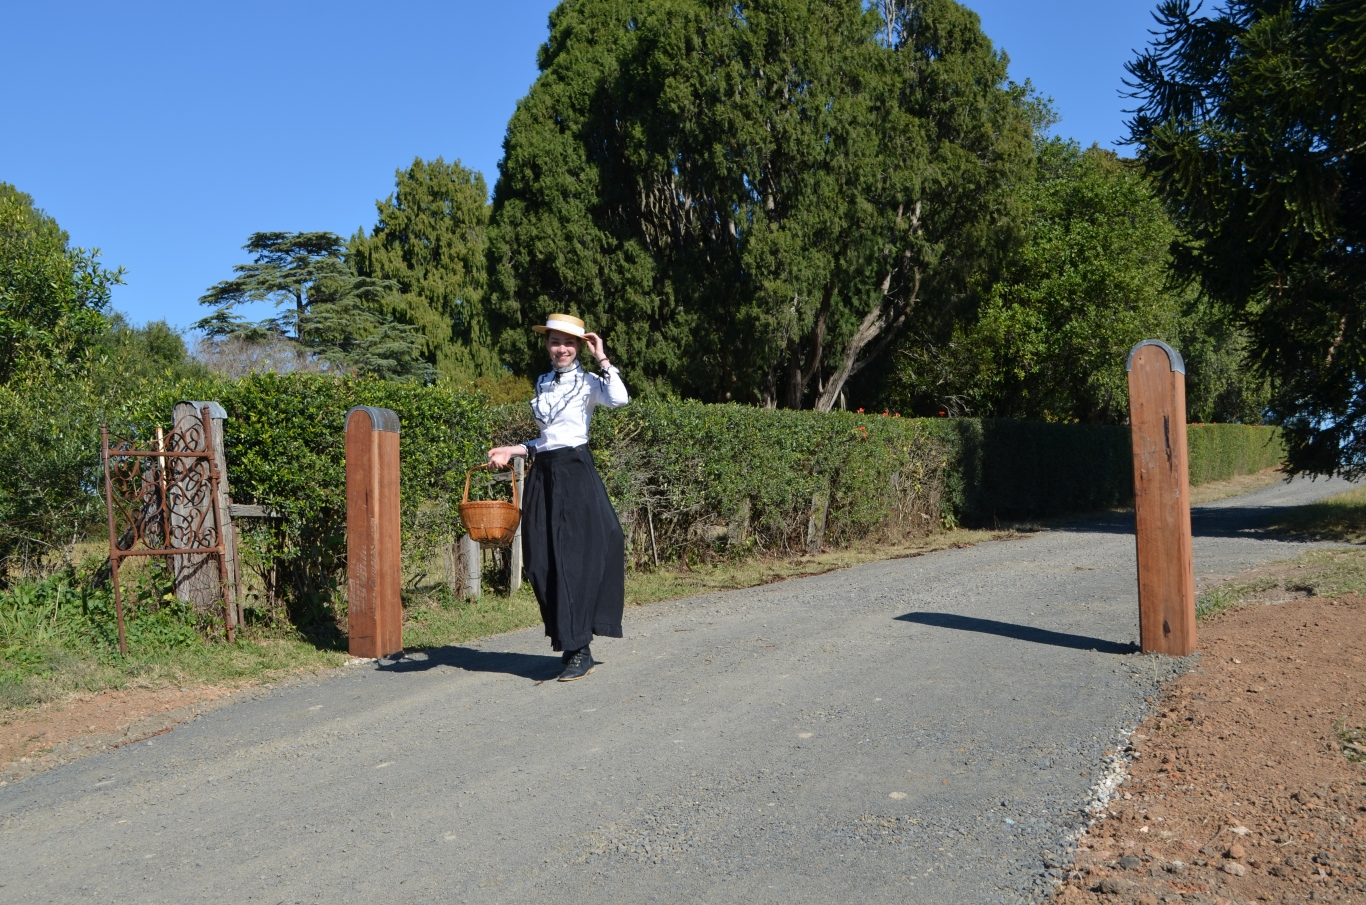 Young woman dressed in period costume with straw hat walking down gravel driveway between gateposts.